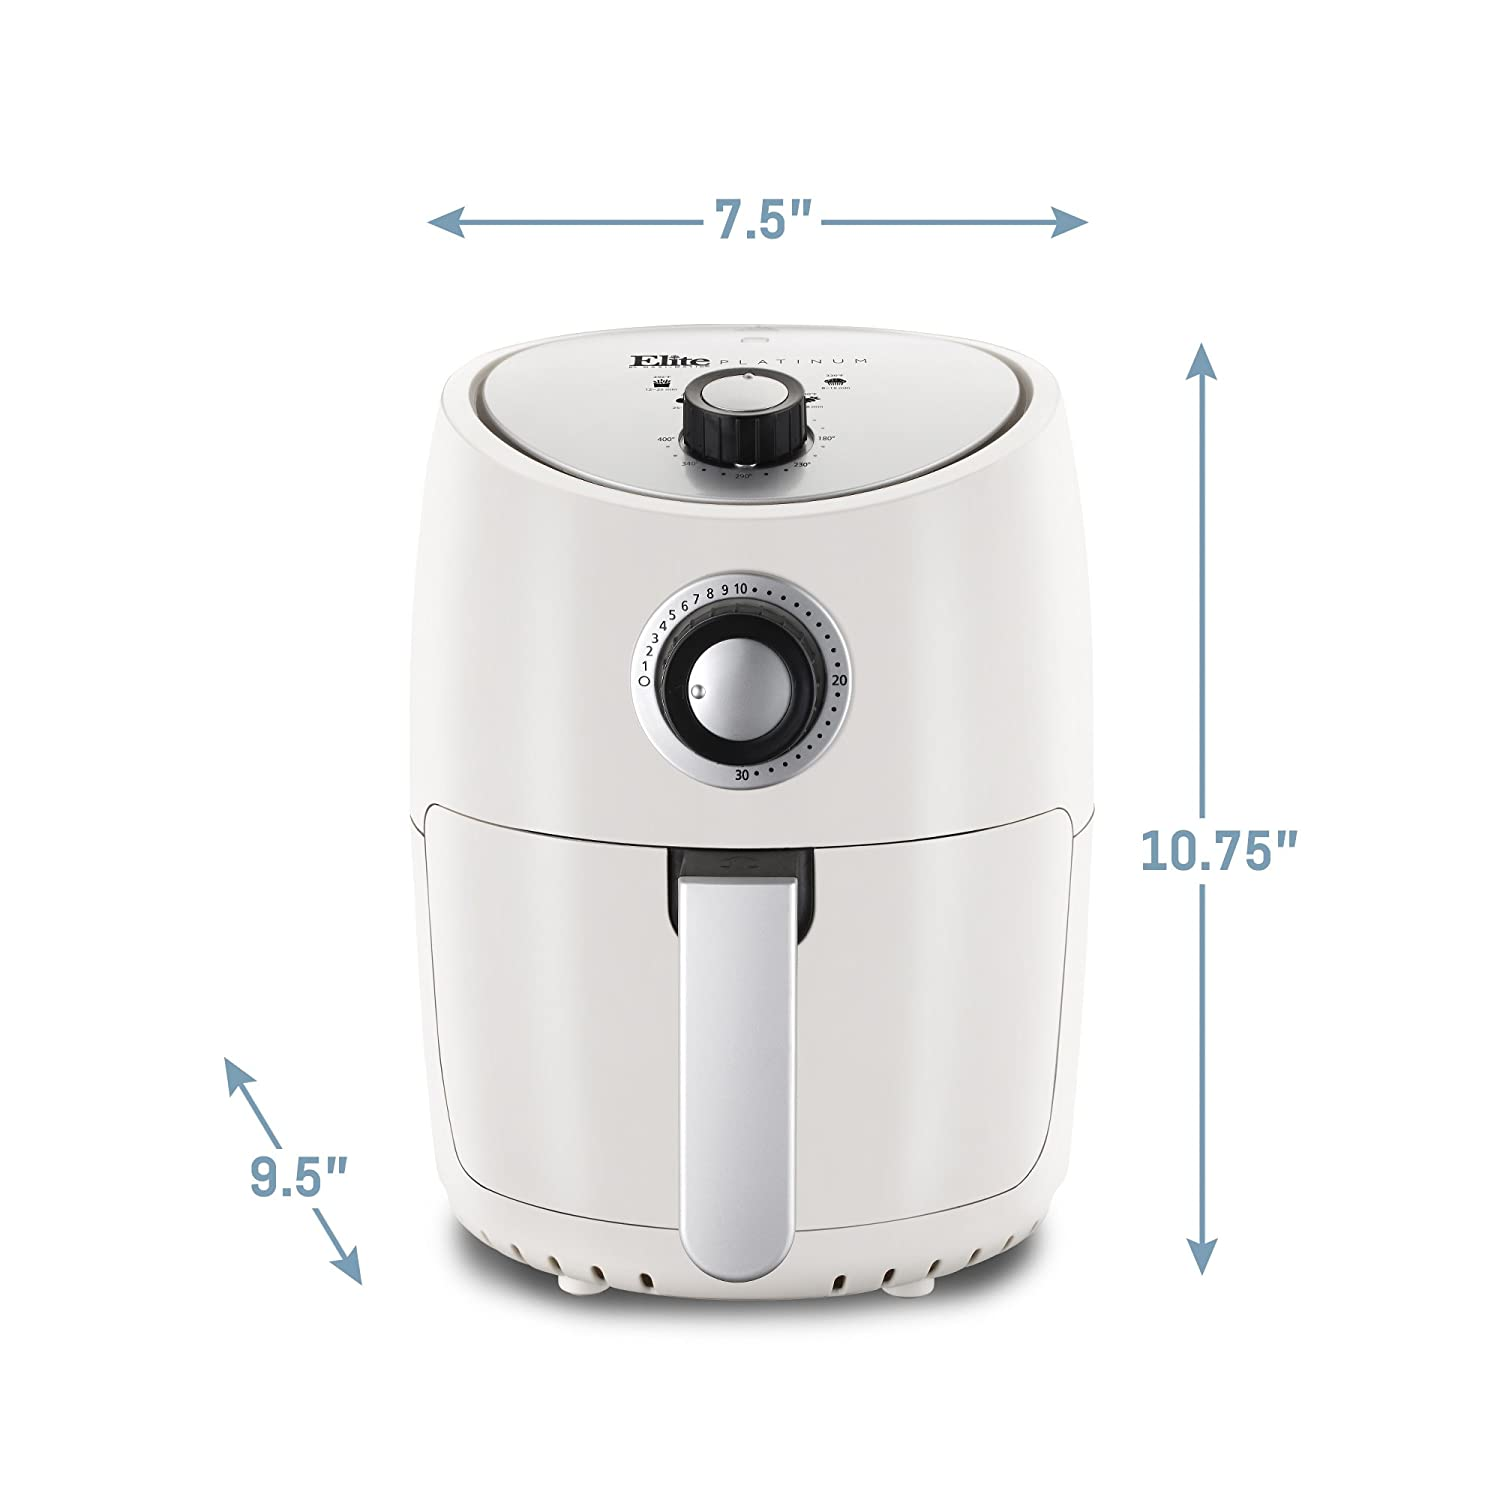 2.3 Quart 1000-Watts with 26 Color Recipes White PFOA//PTFE Free Timer /& Temperature Controls Oil-Less Healthy Cooker Elite Platinum EAF-801W Personal Compact Space Saving Electric Hot Air Fryer